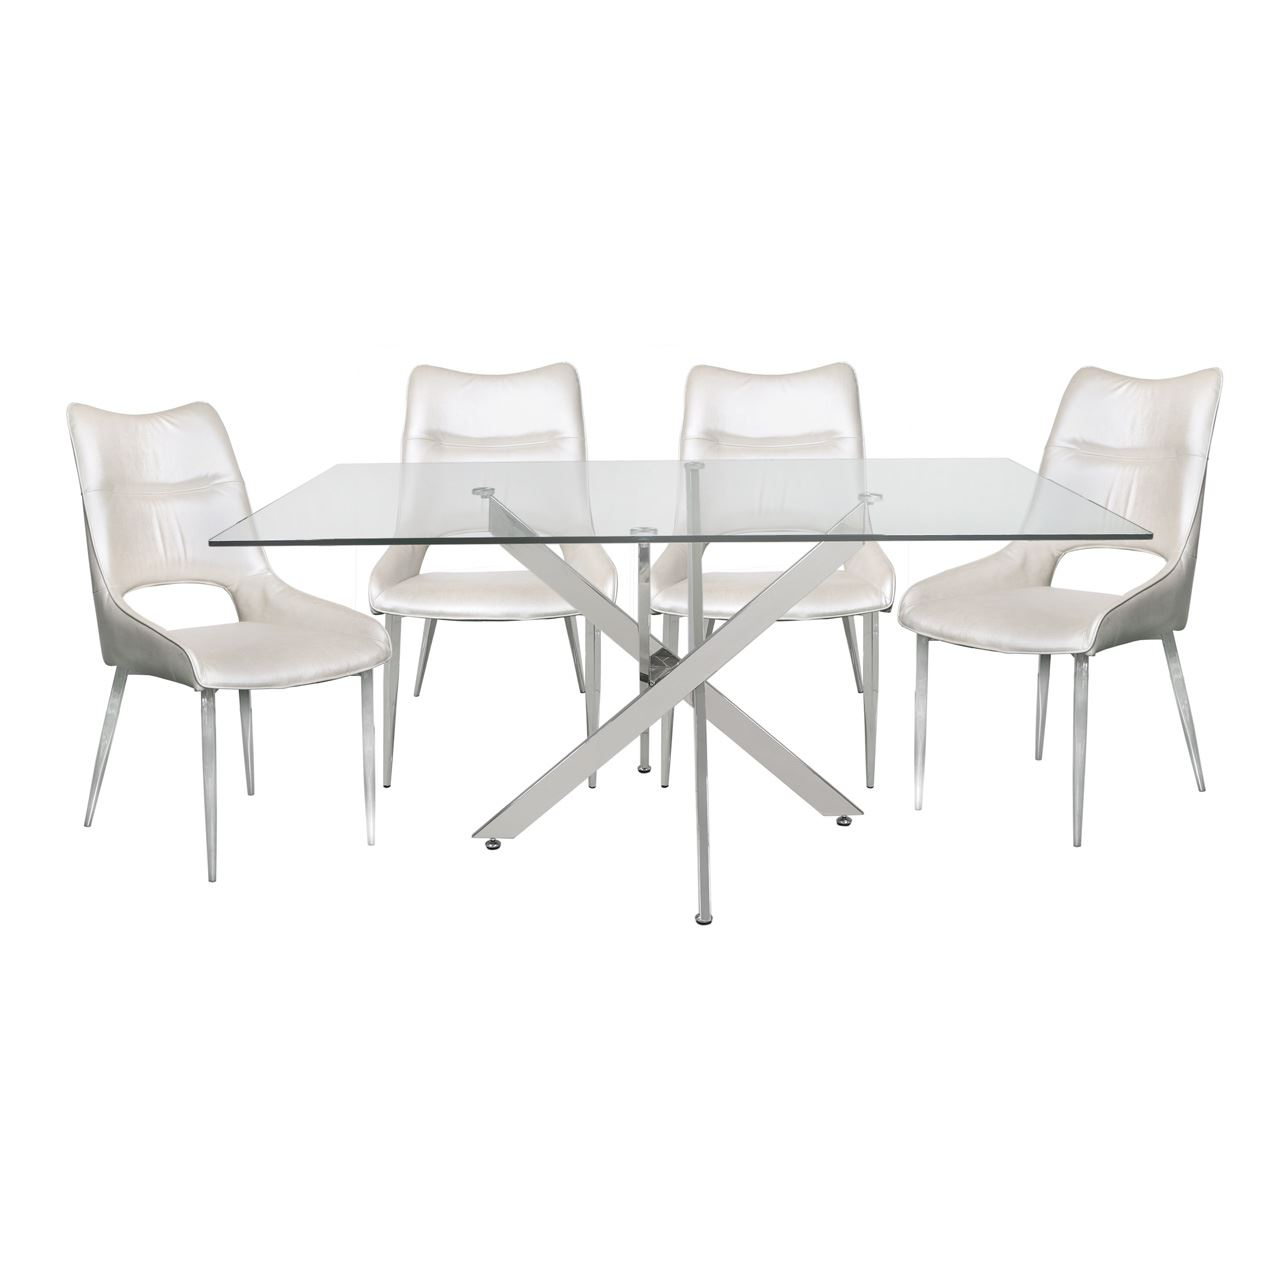 Chrome Dining Tables With Tempered Glass Regarding Most Up To Date Details About Tempered Glass Steel Chrome Rectangular Dining Table And 4 White Adelaide Chairs (View 10 of 30)